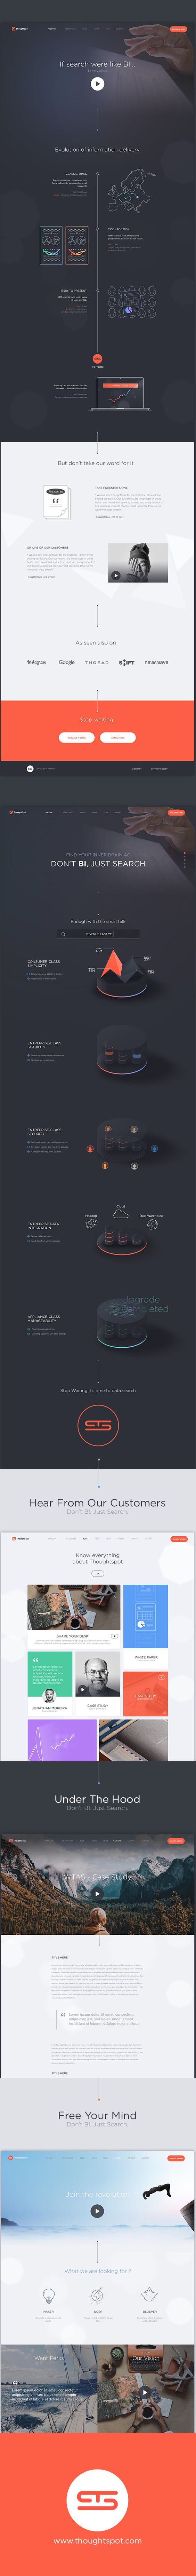 Creative UI and UX Design Work